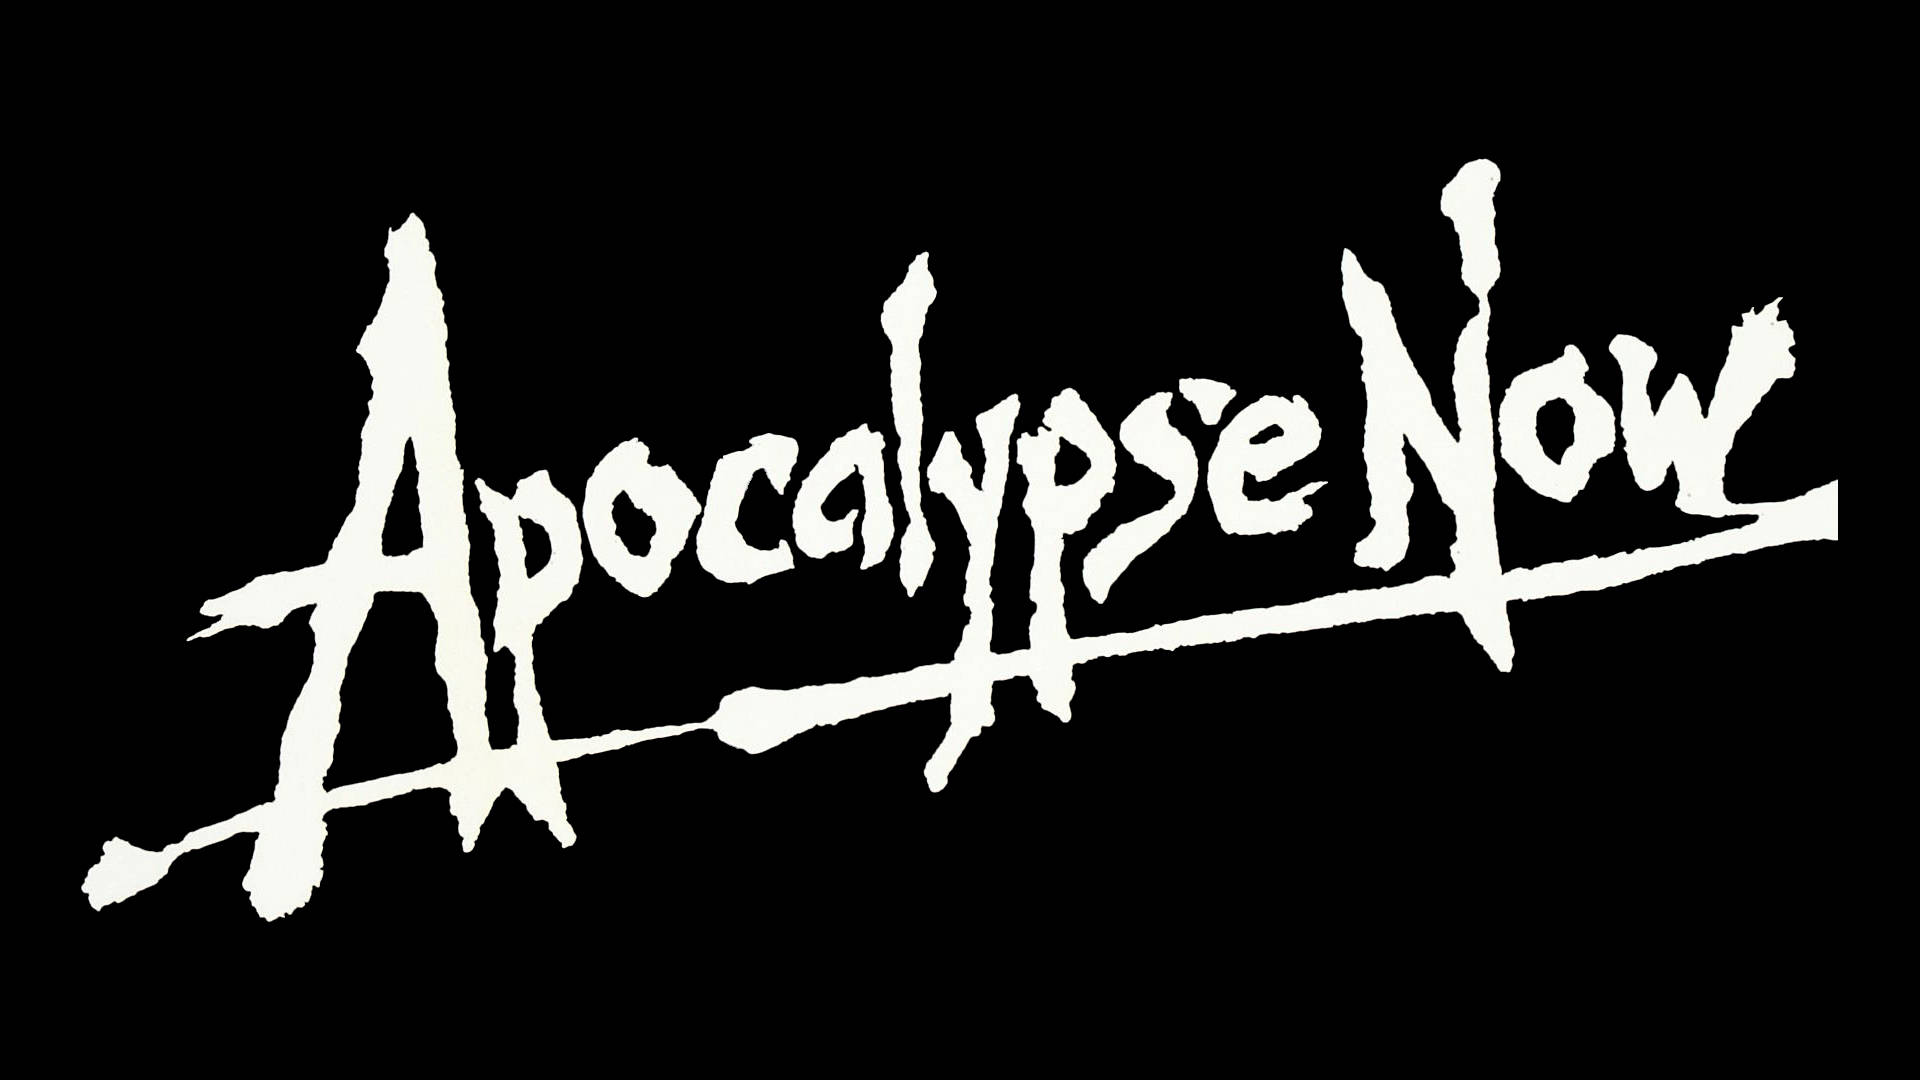 Apocalypse Now 19202151080 Wallpaper 865859 1920x1080